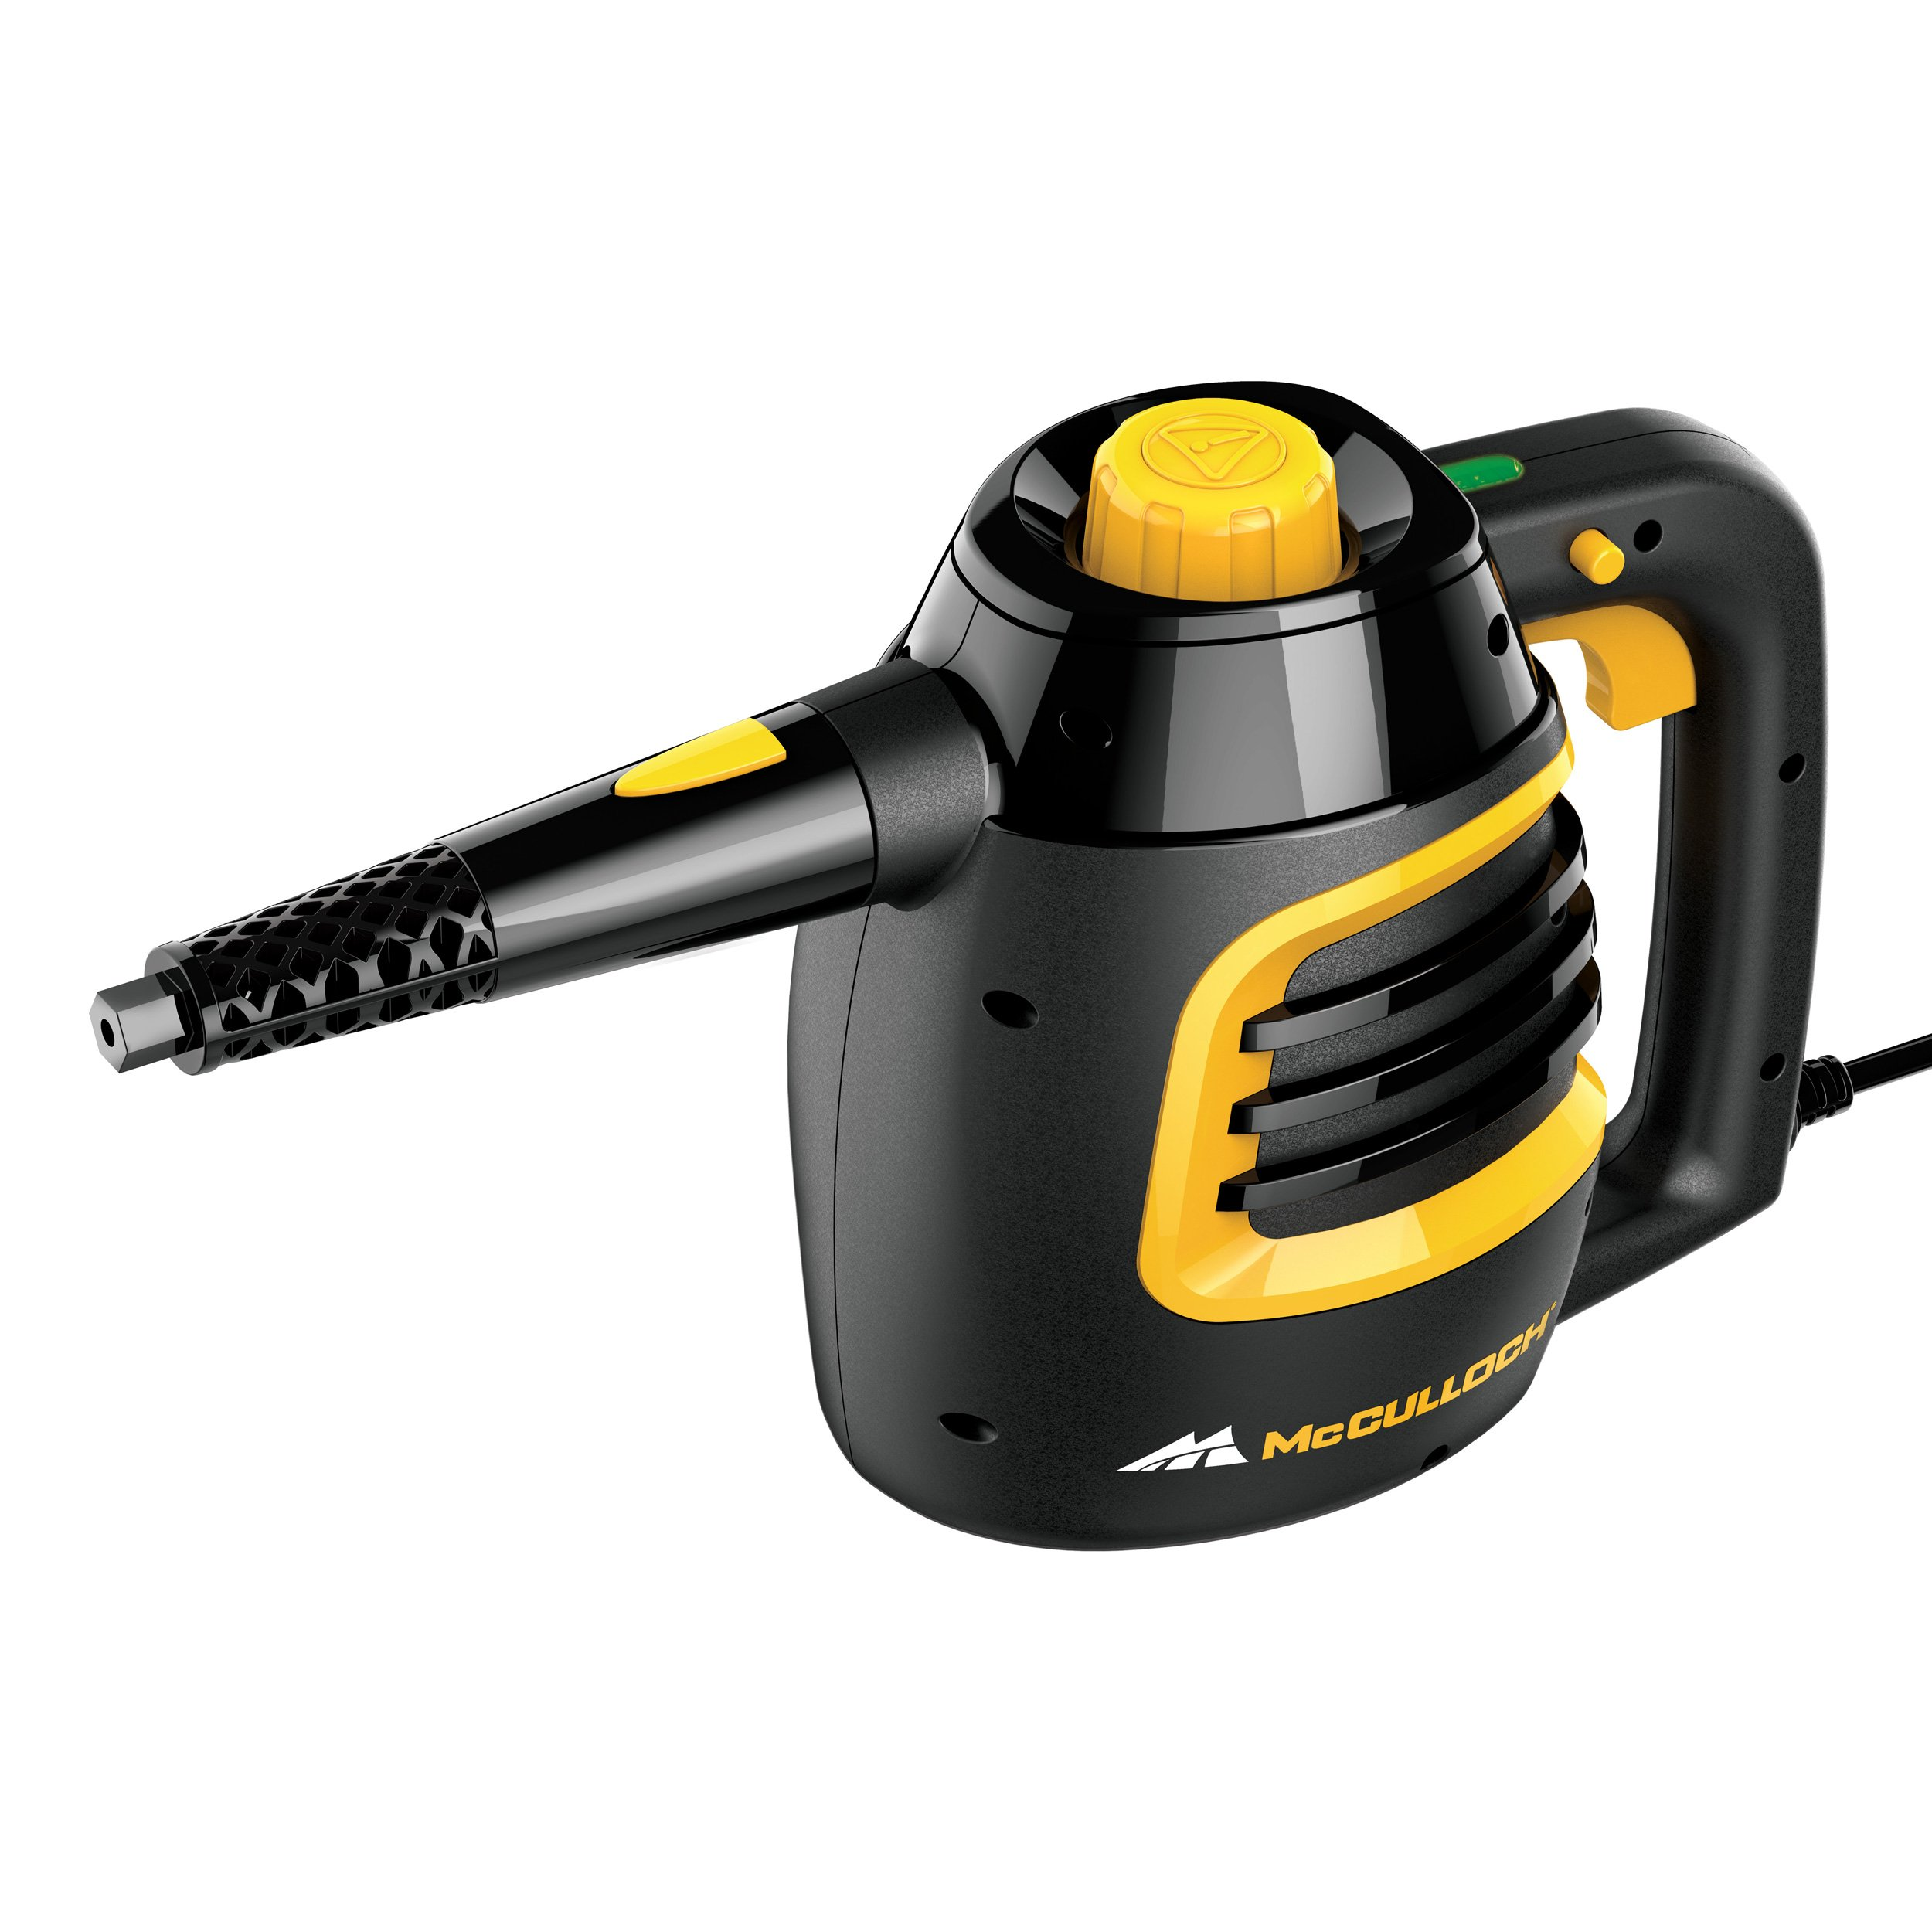 McCulloch MC1230 Handheld Steam Cleaner, Black by McCulloch